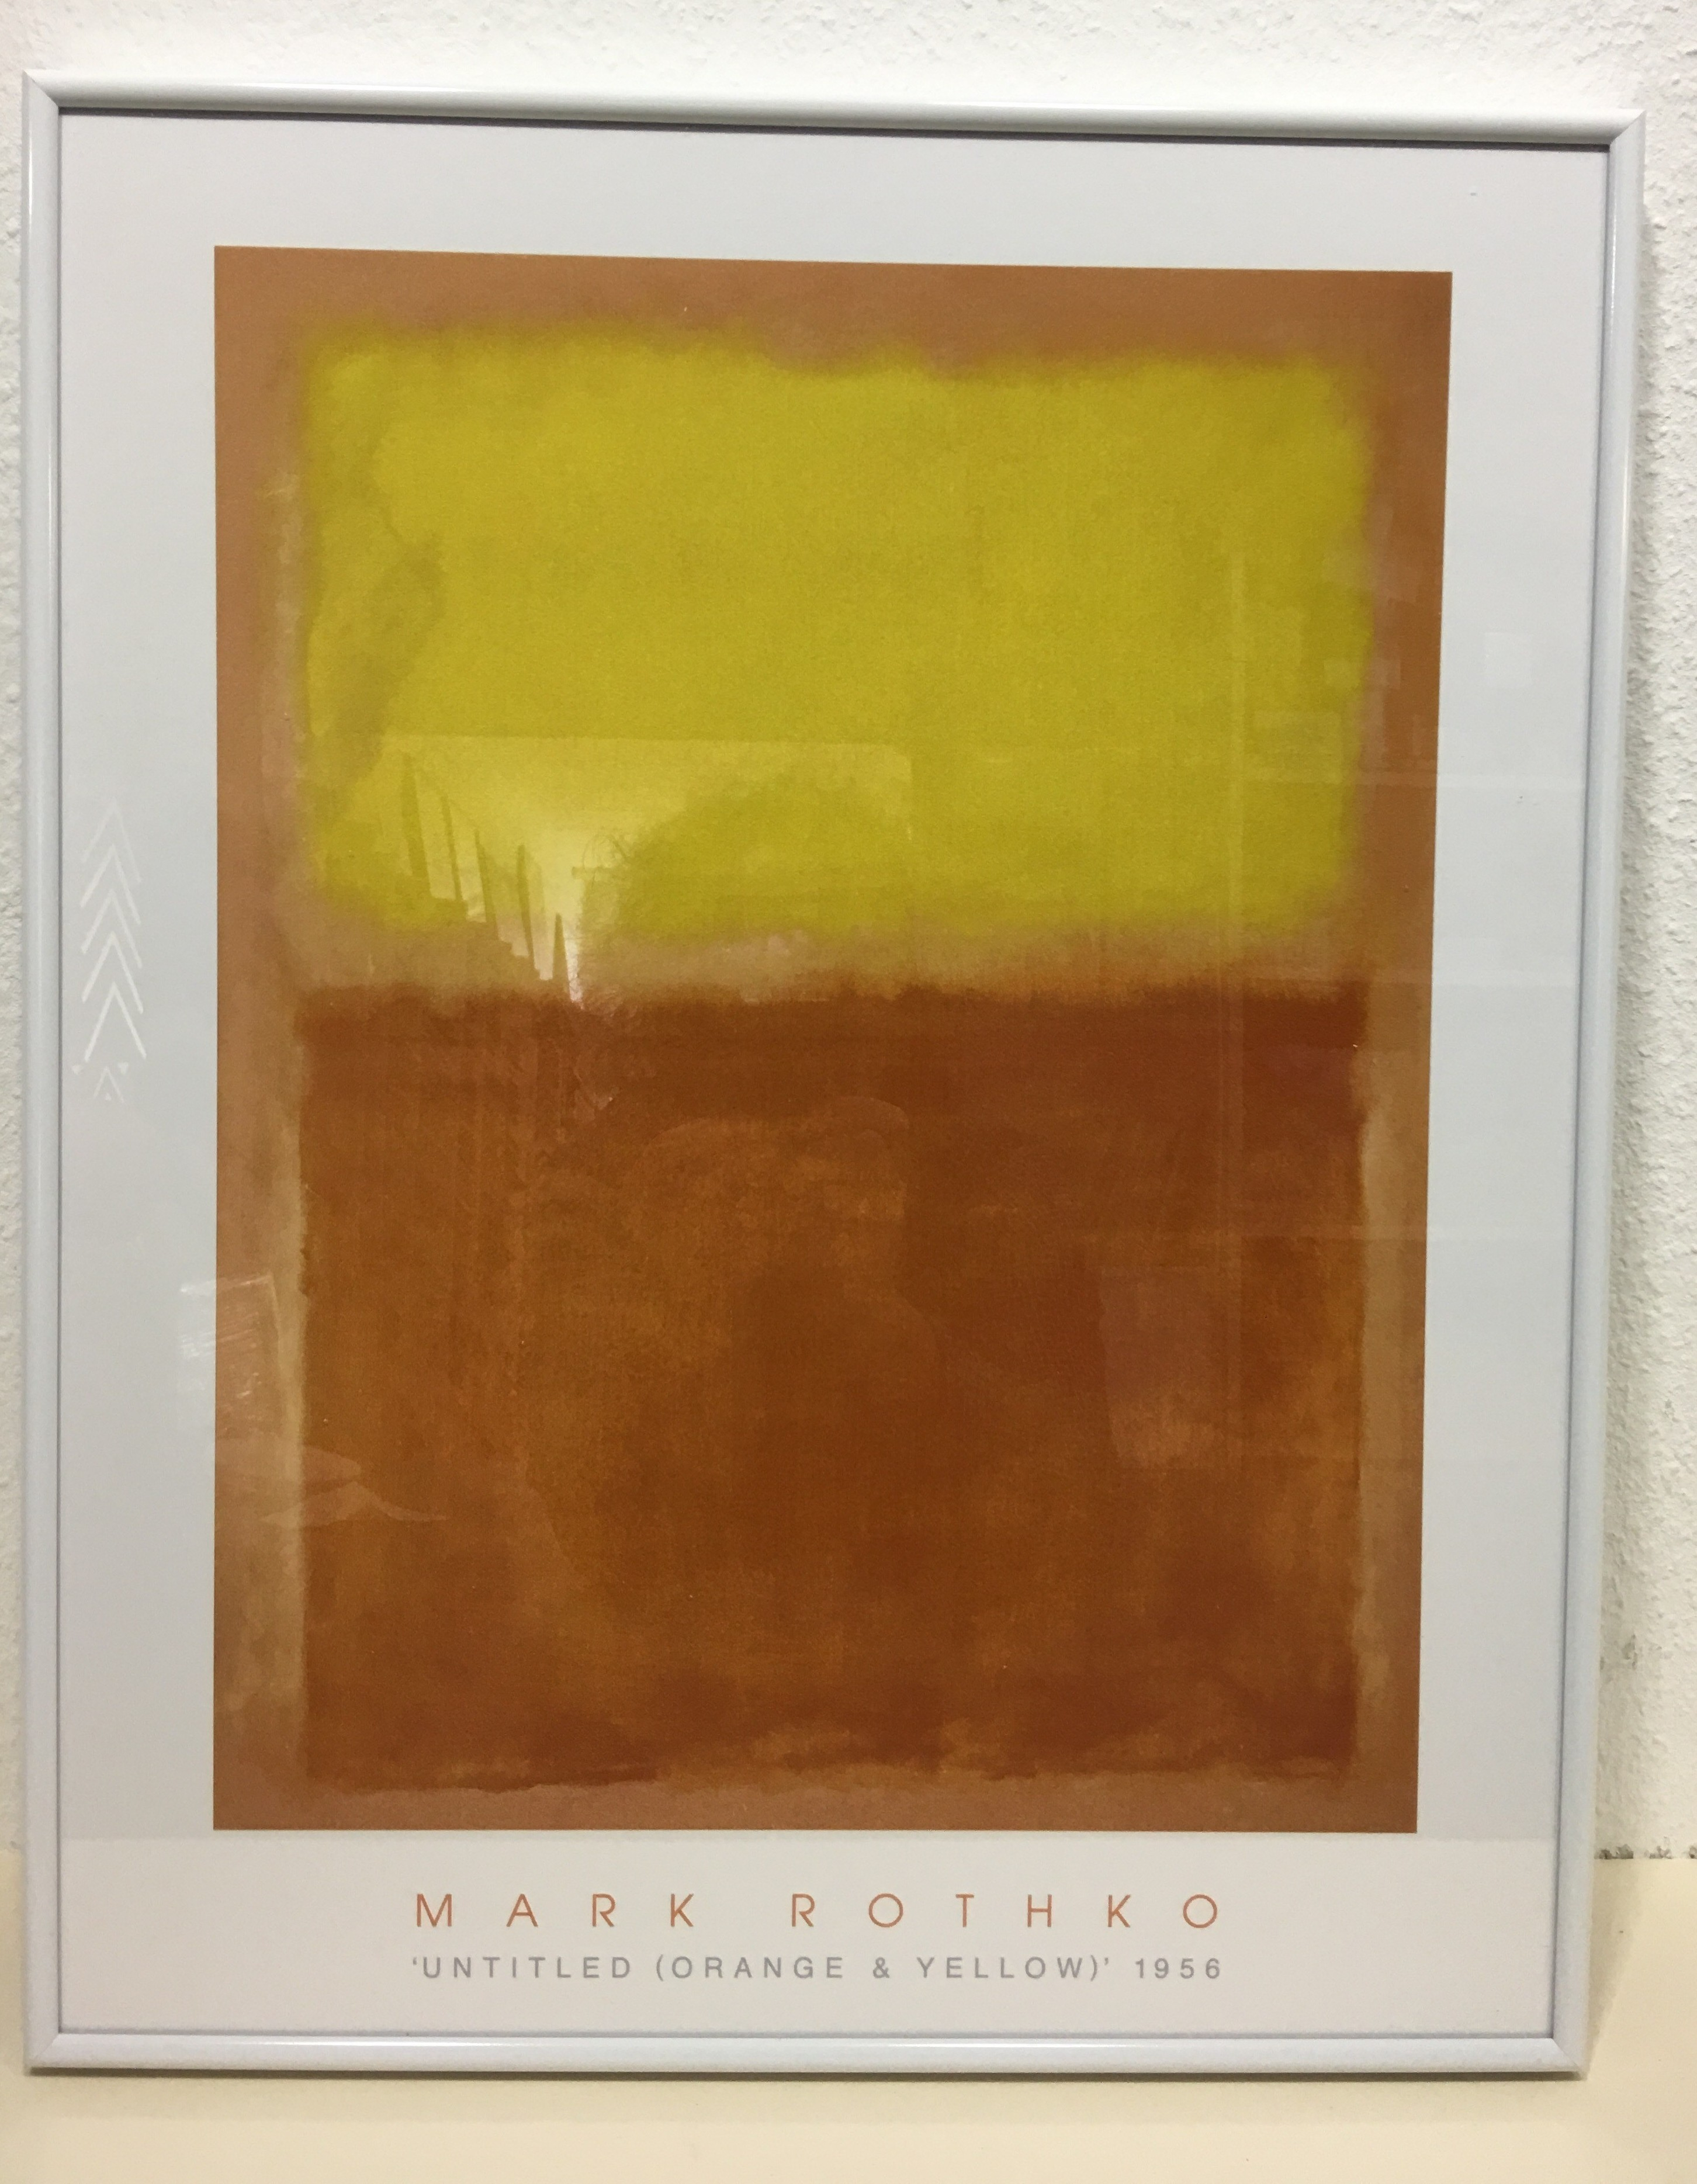 Gerahmte Bilder Wohnzimmer Wandbild Rothko Mark Orange And Yellow 1956